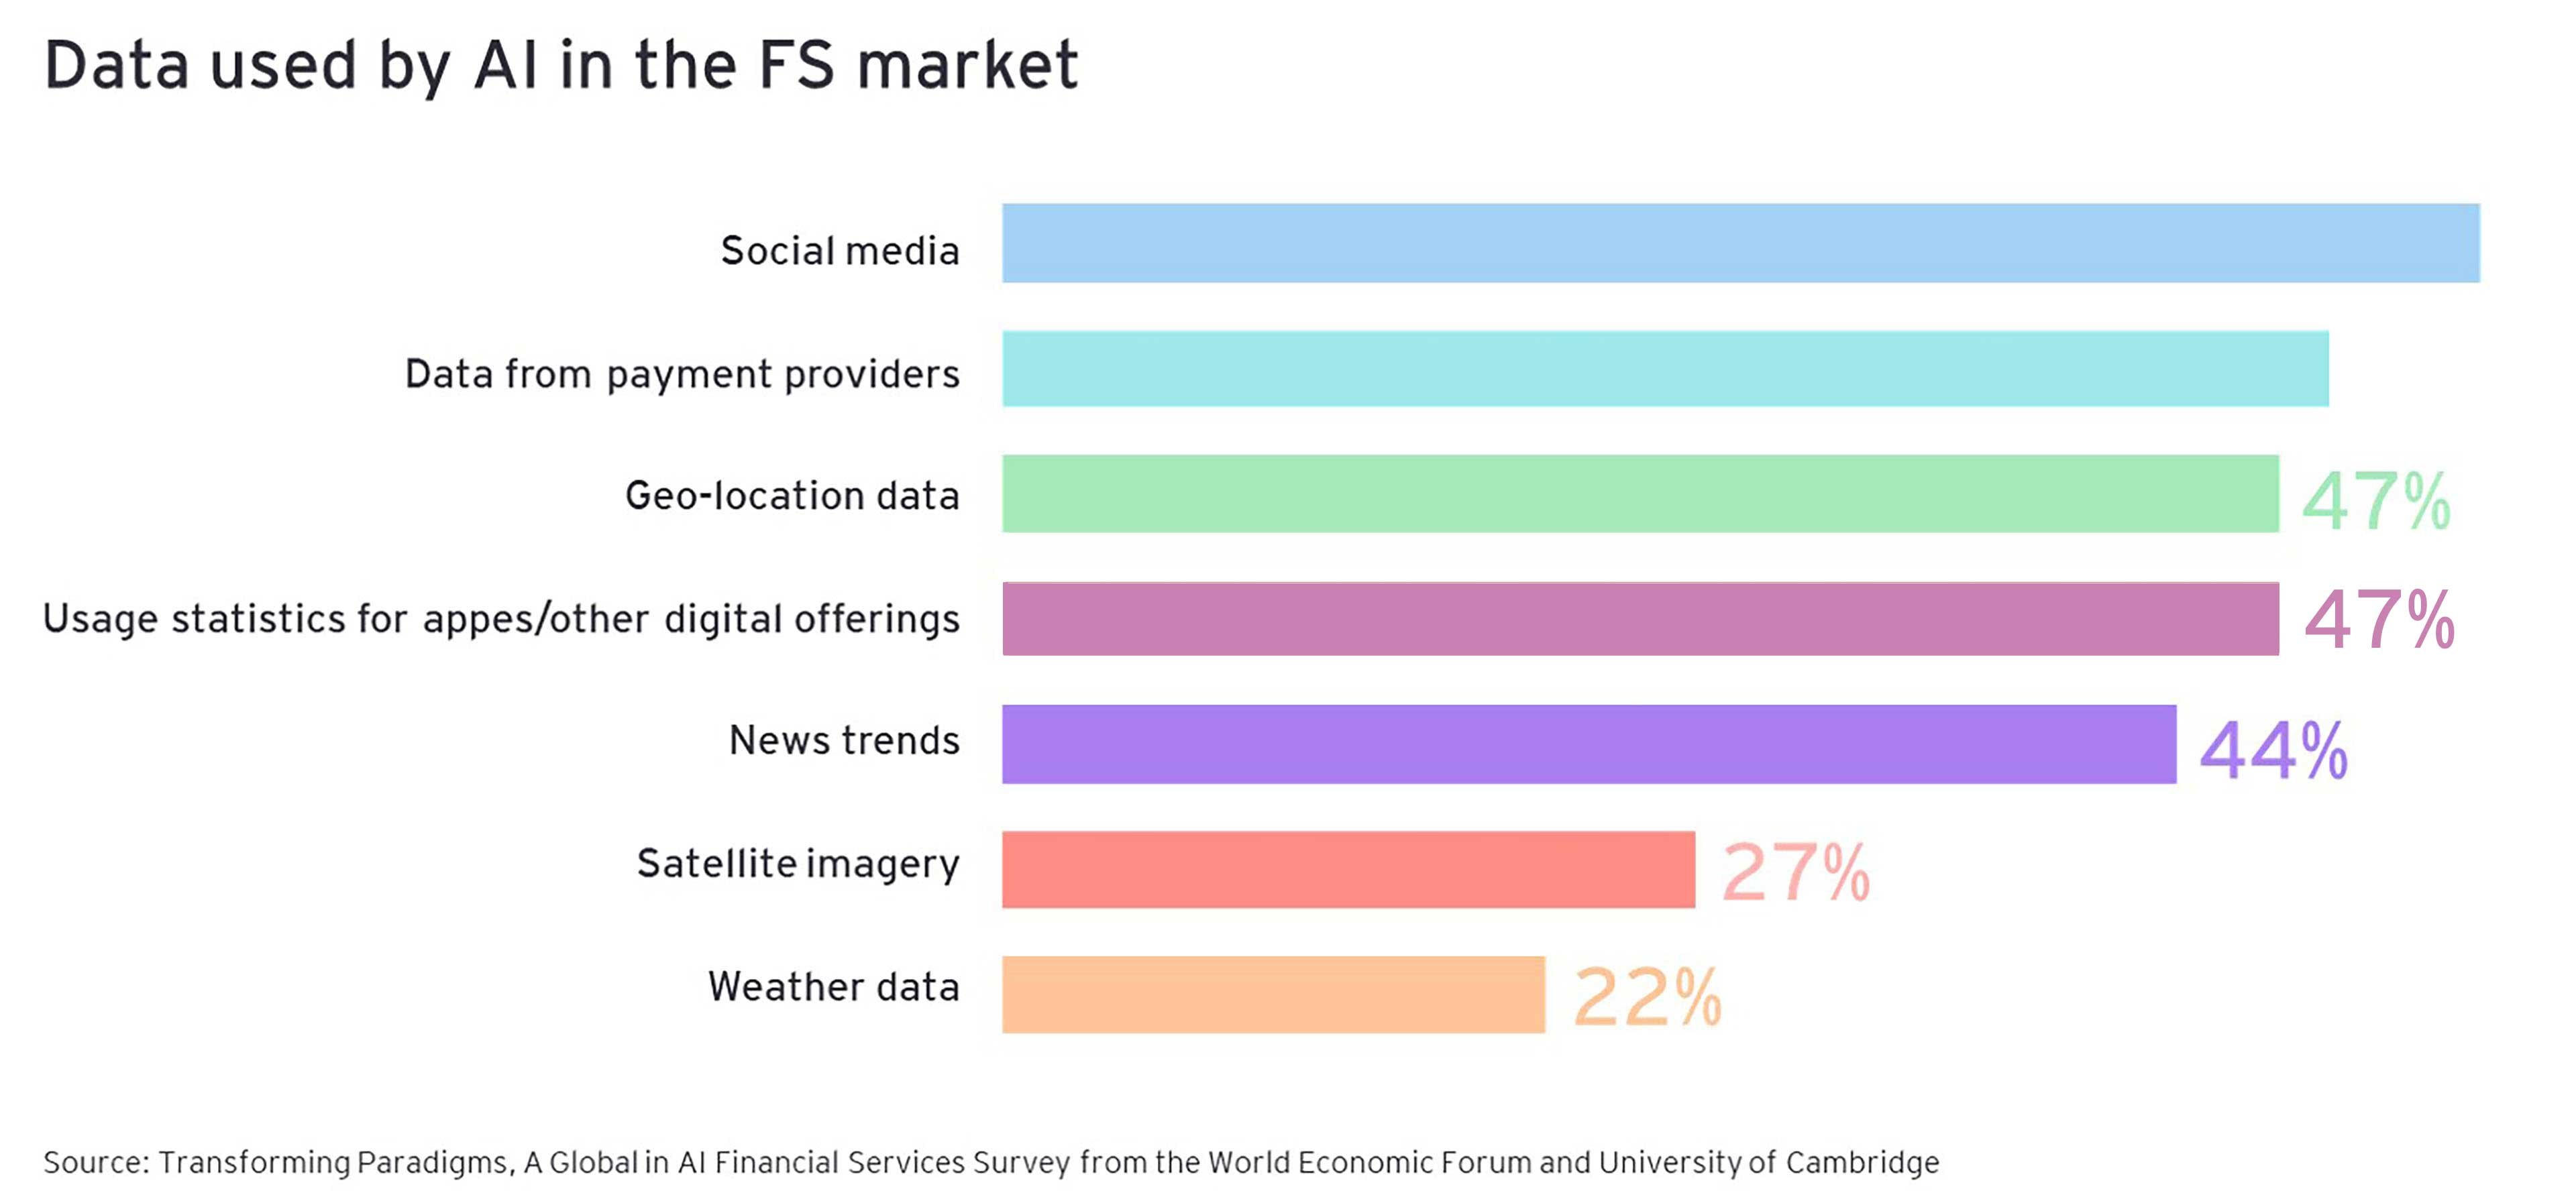 Data used by AI in the FS market